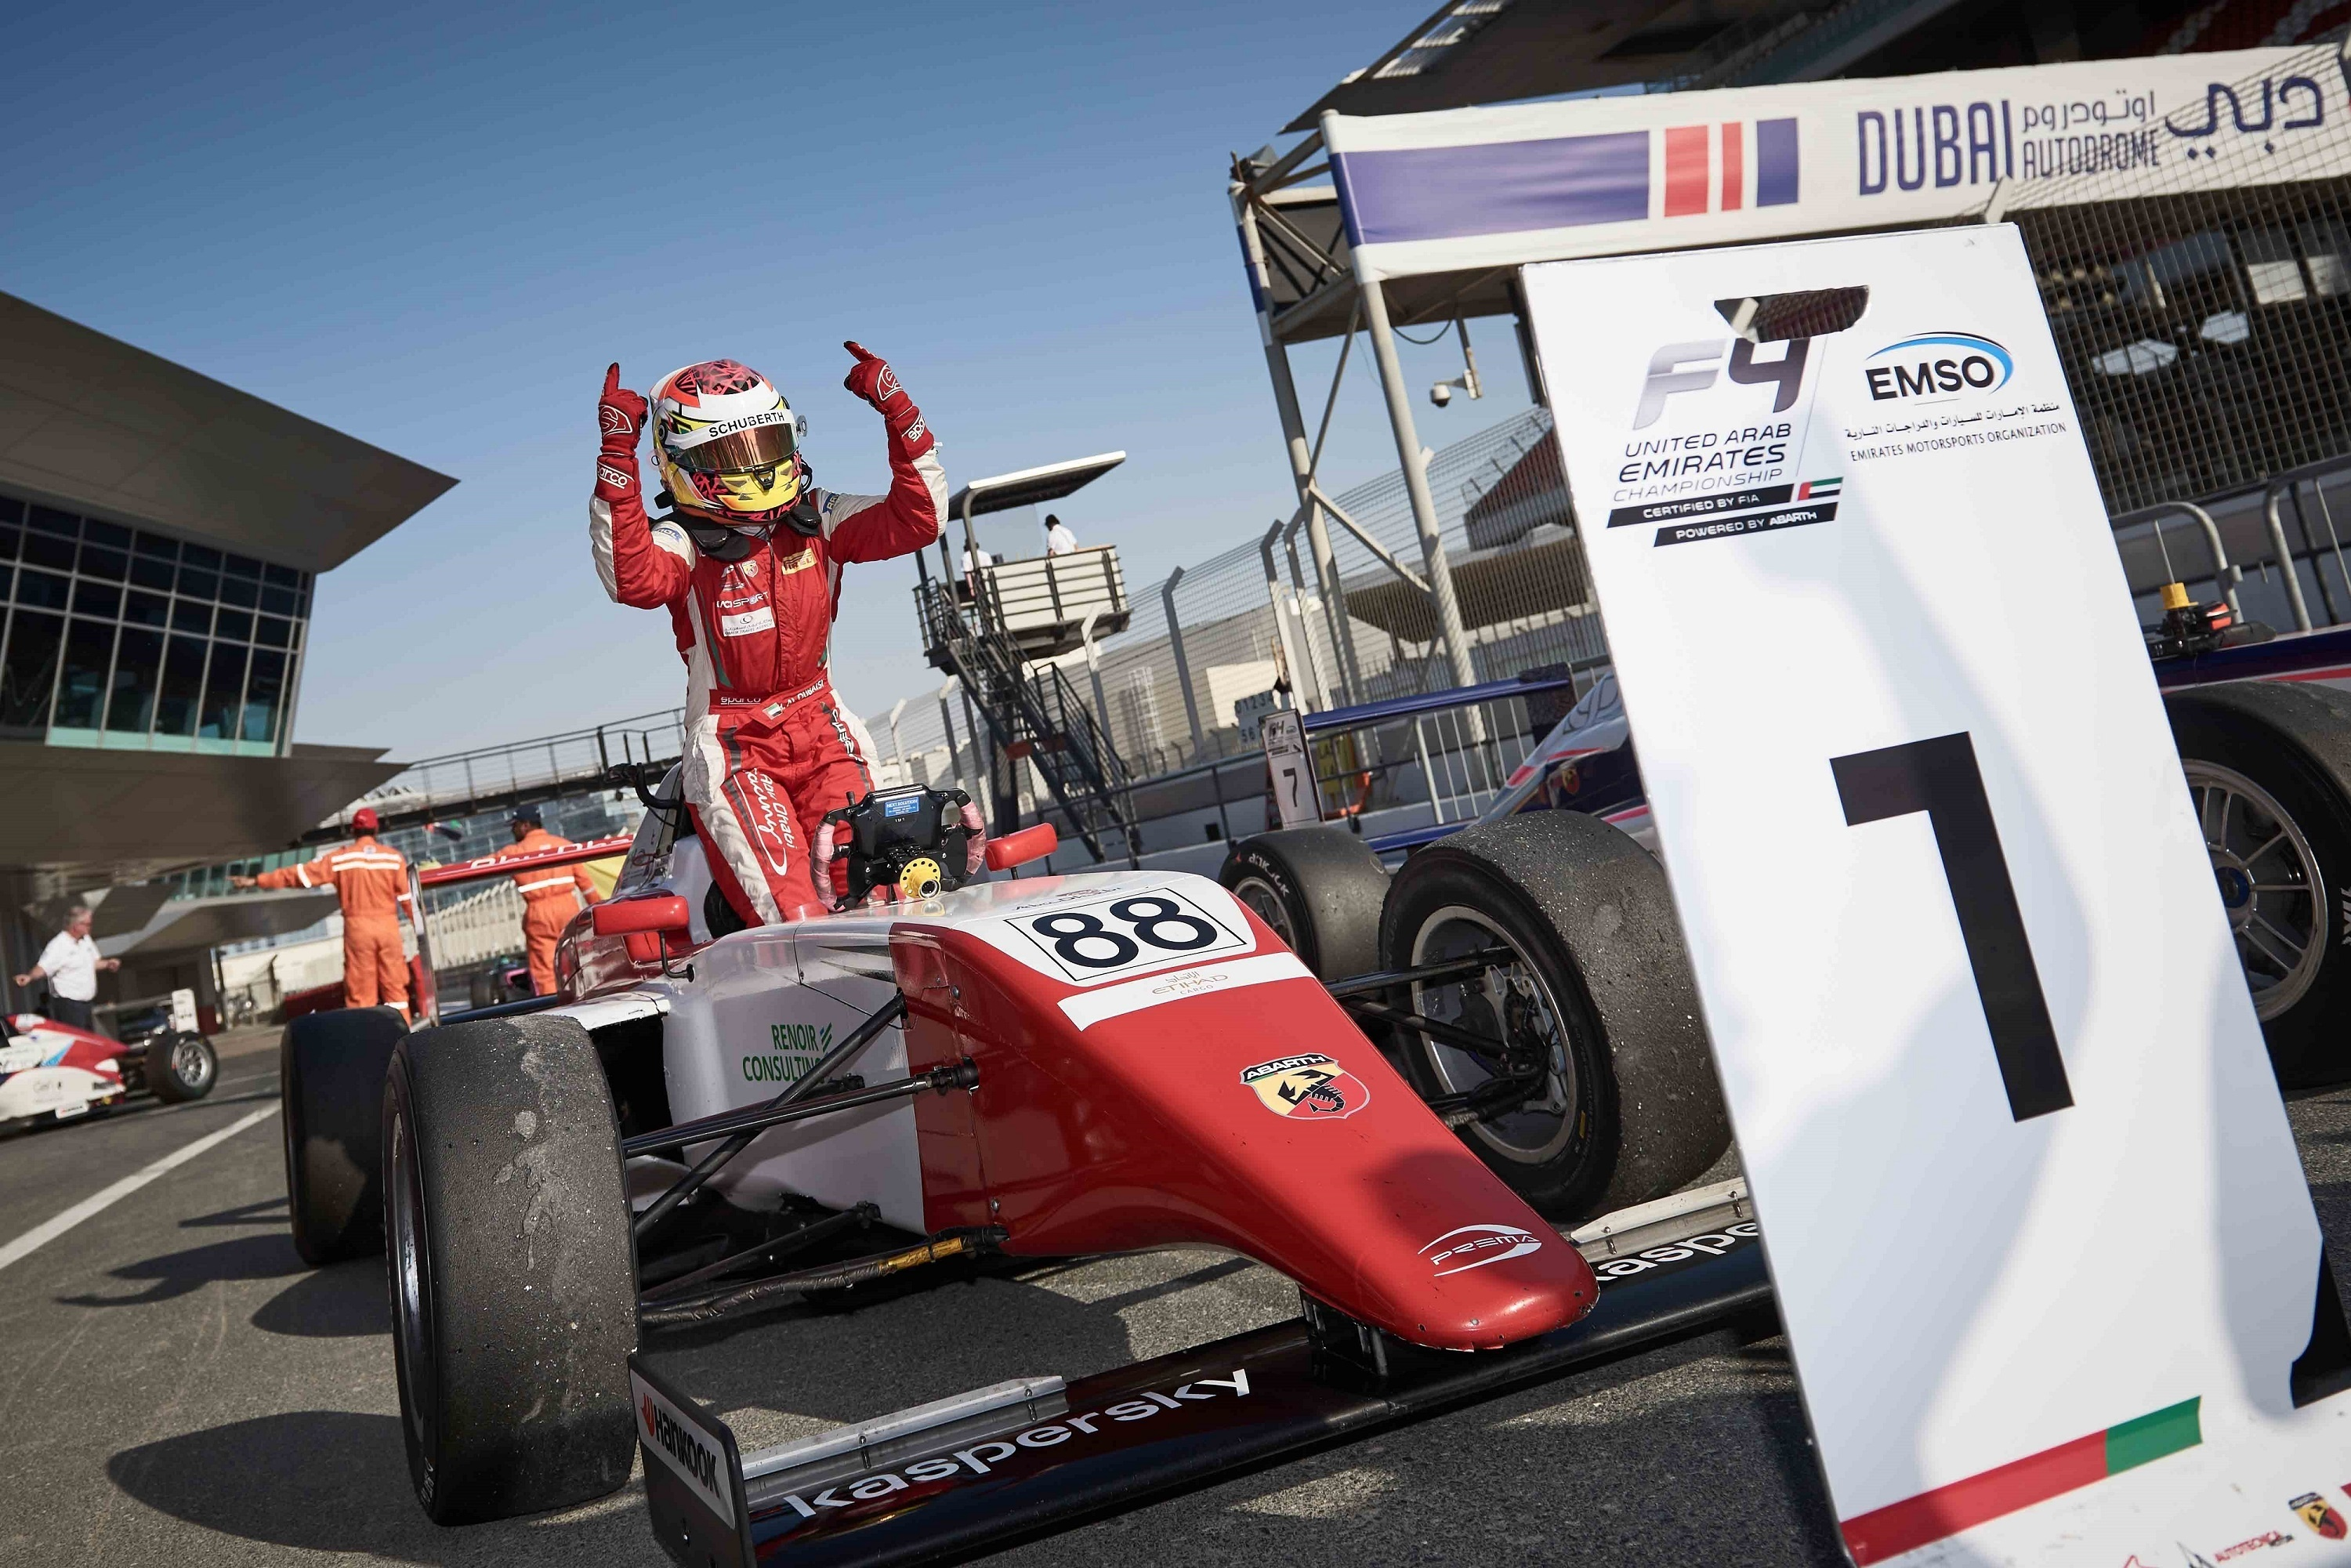 First-of-its-kind motorsport survey boosts efforts to develop uae's young racing drivers